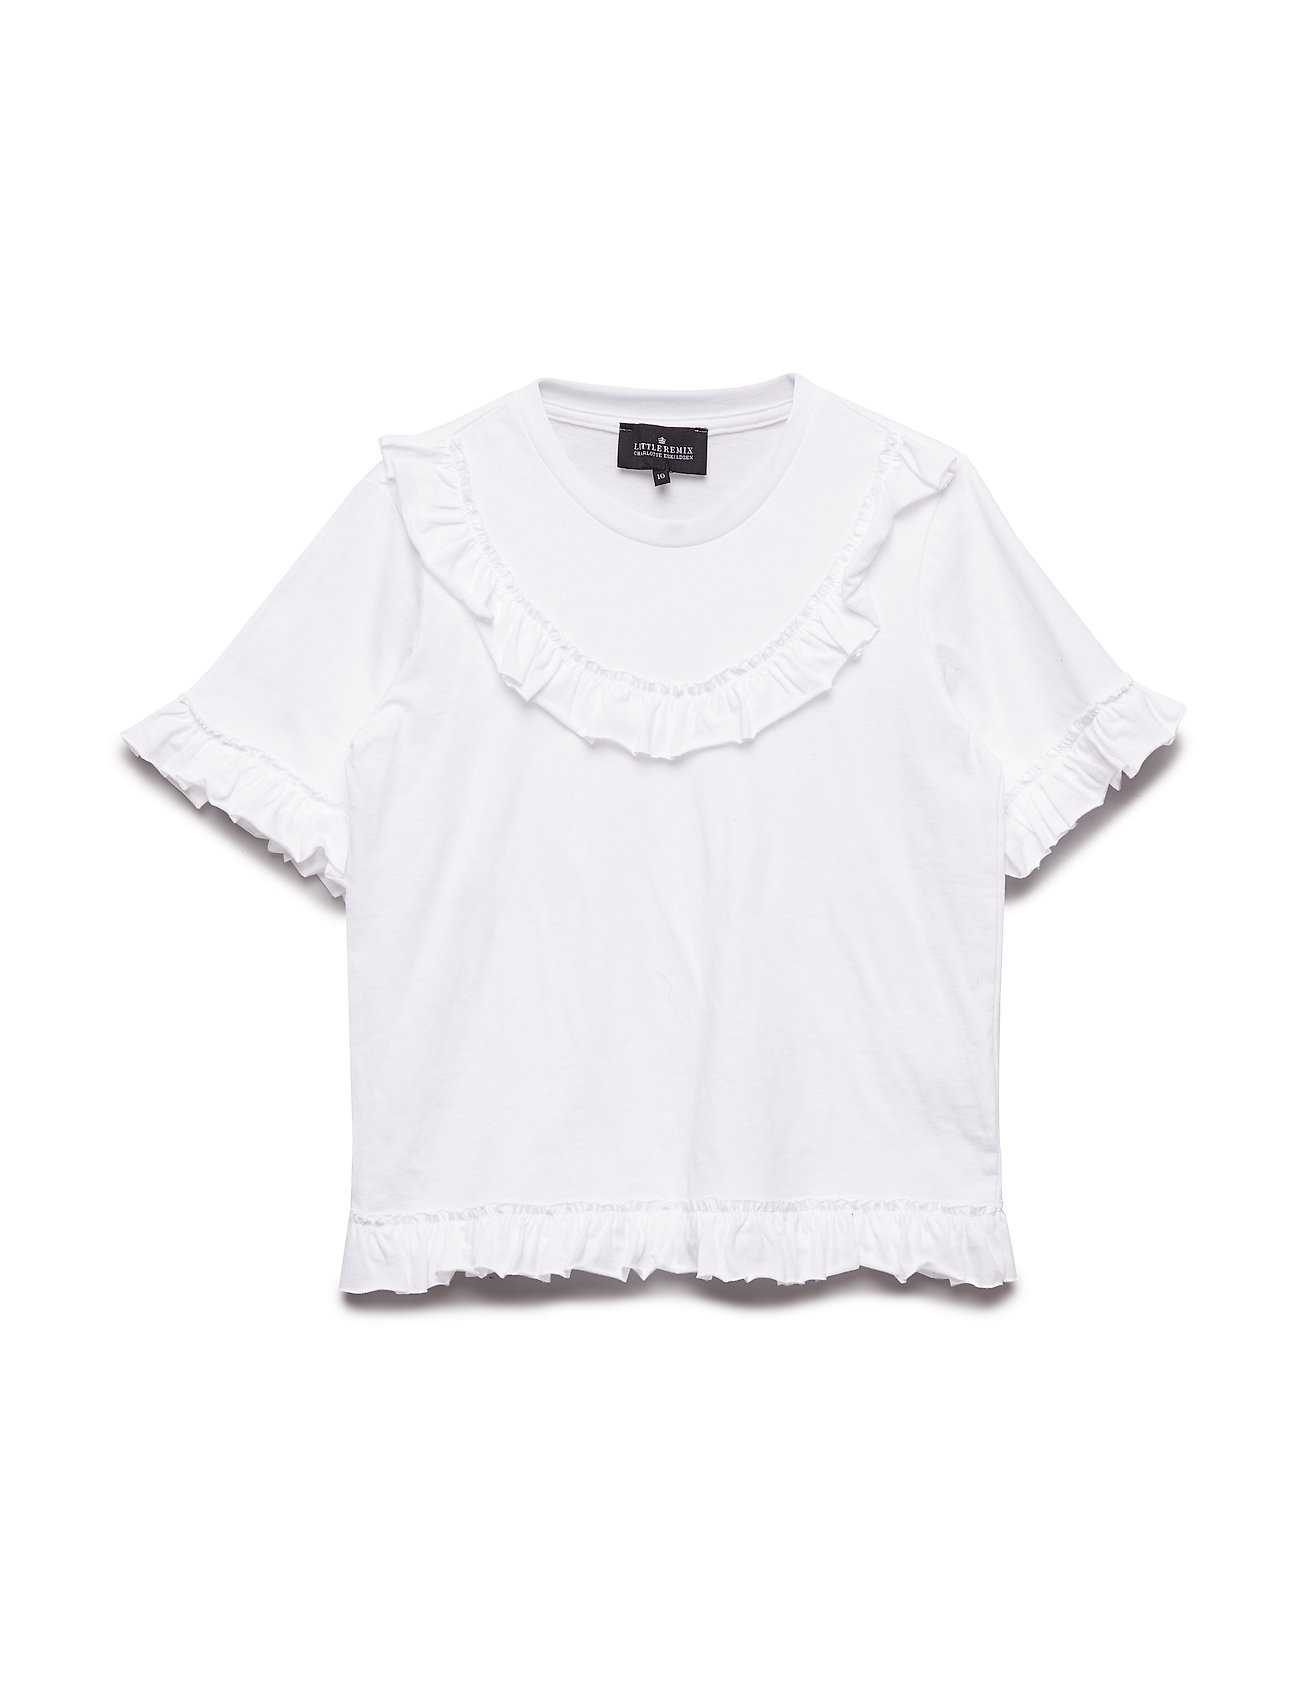 Lr Stanley Ruffle Tee - Little Remix